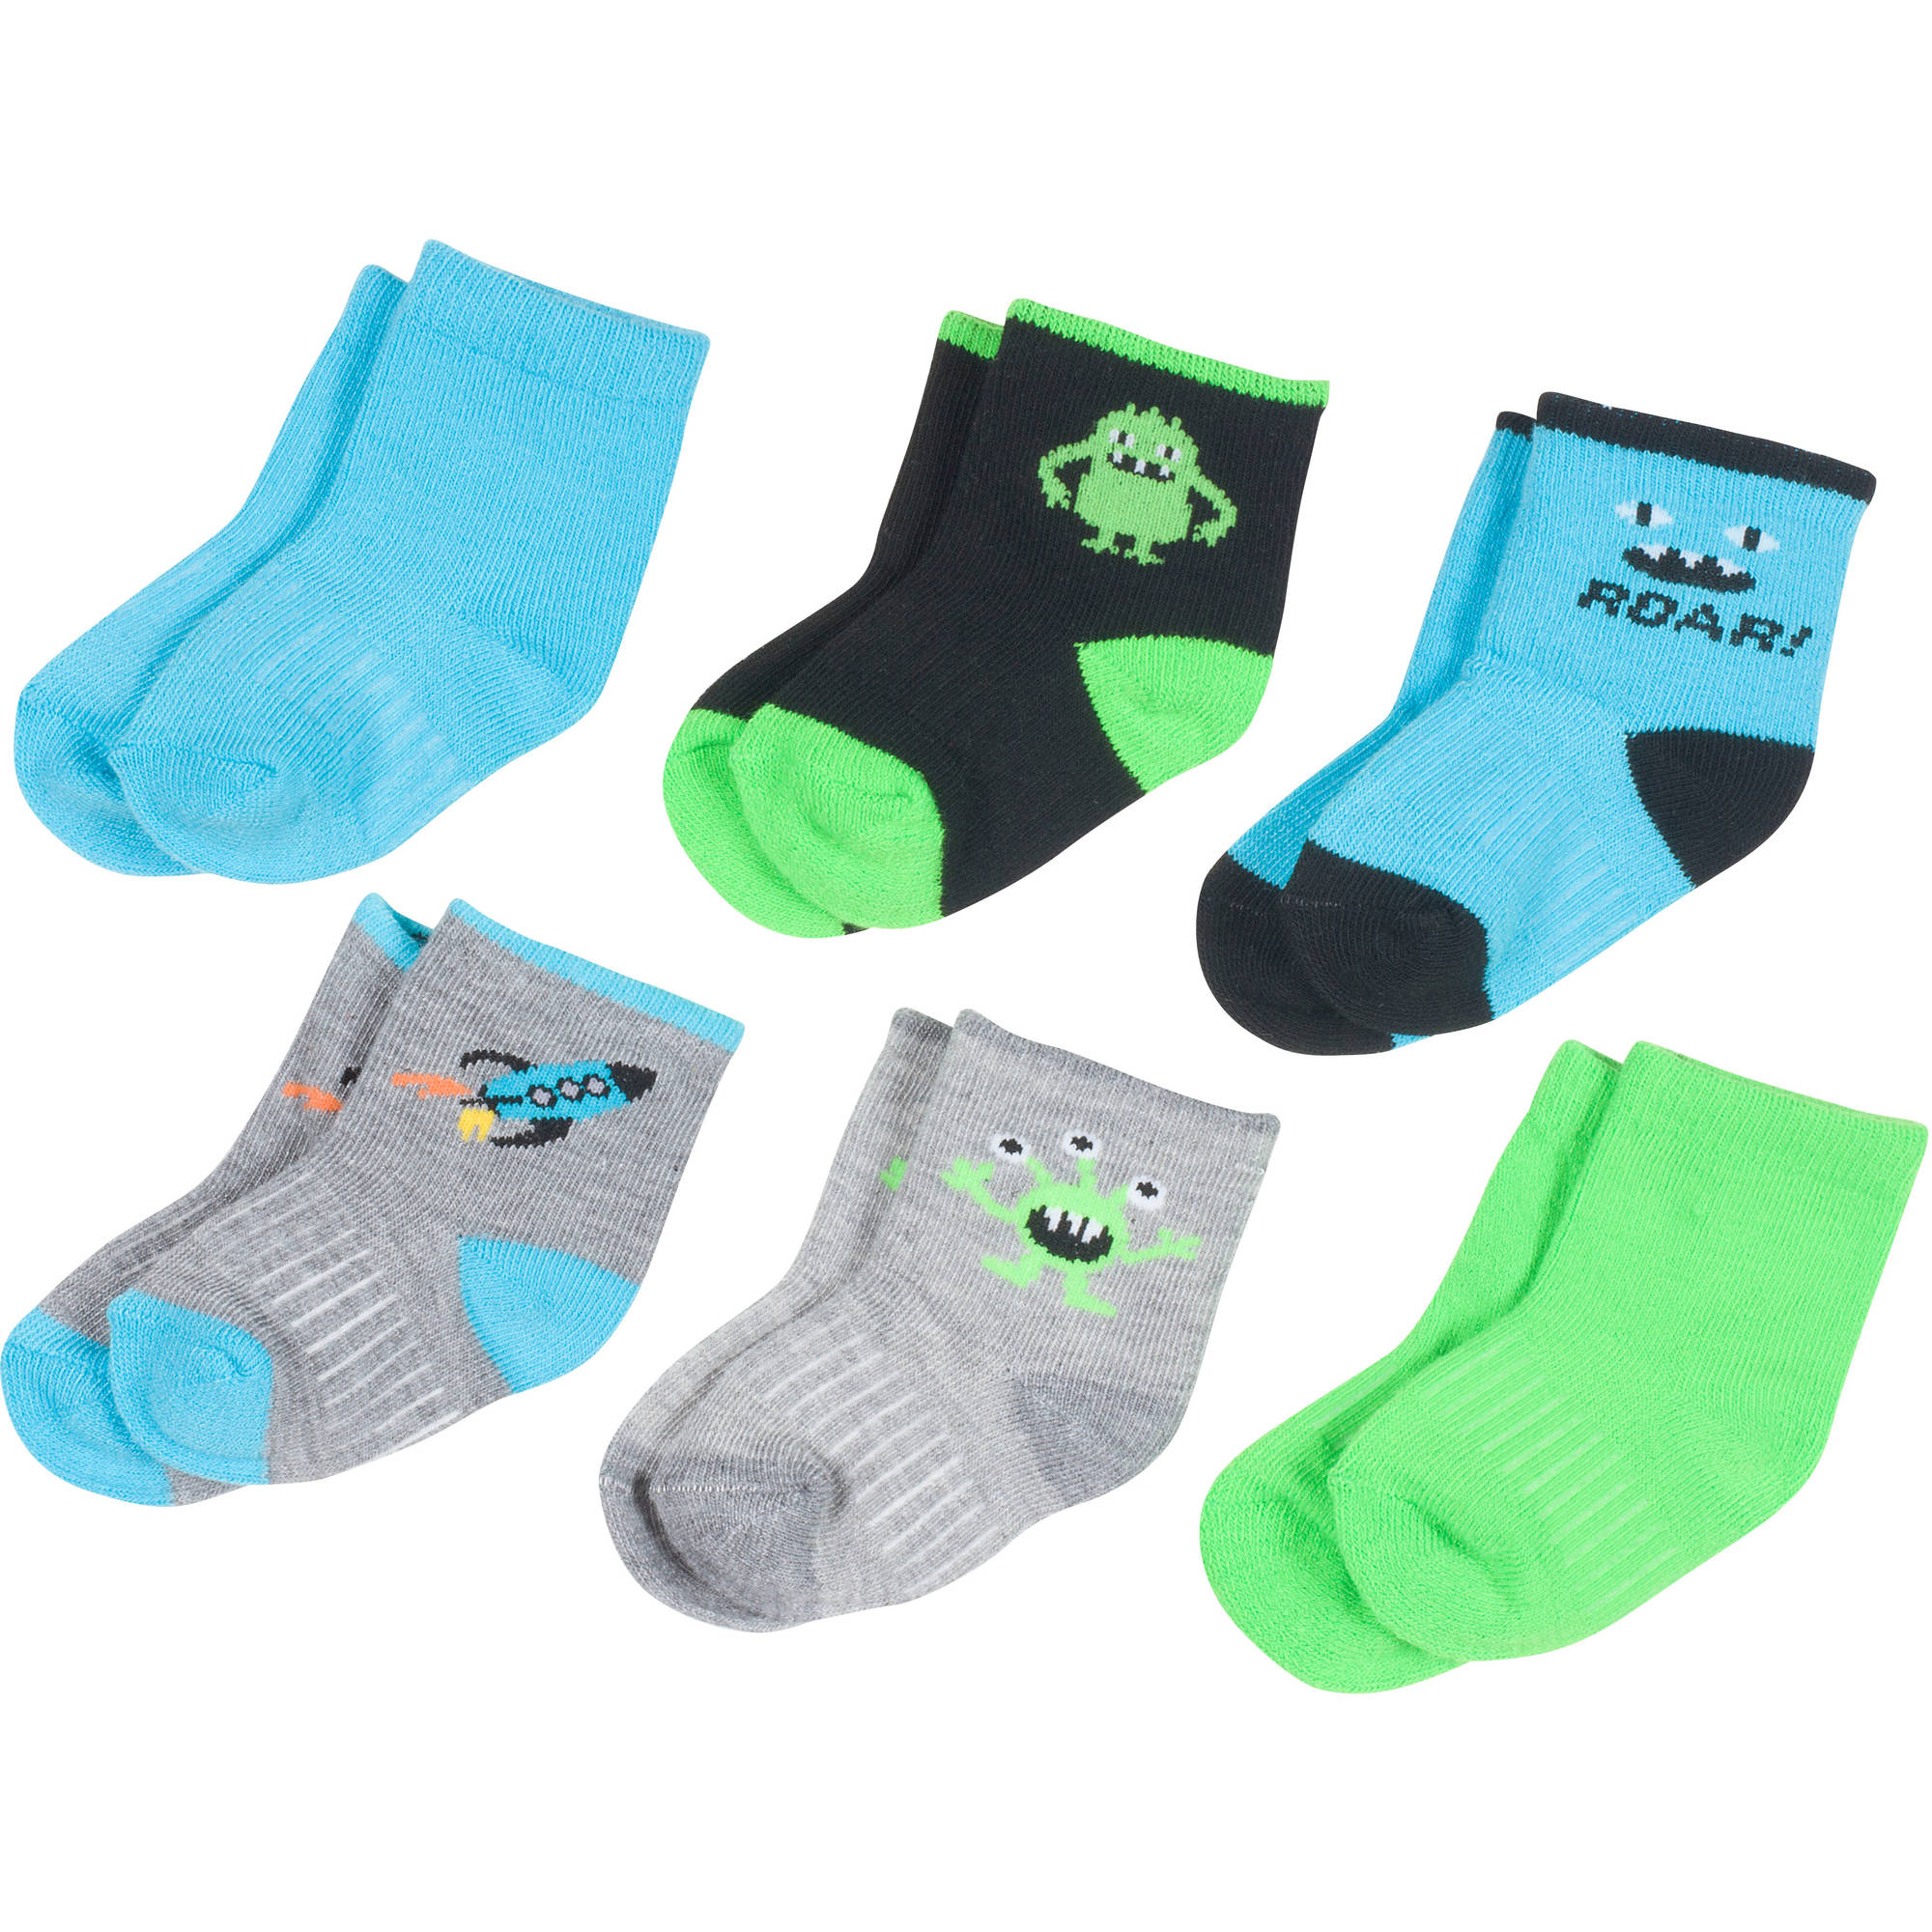 by Peds Boy Infant Monsters 6 Pairs Walmart